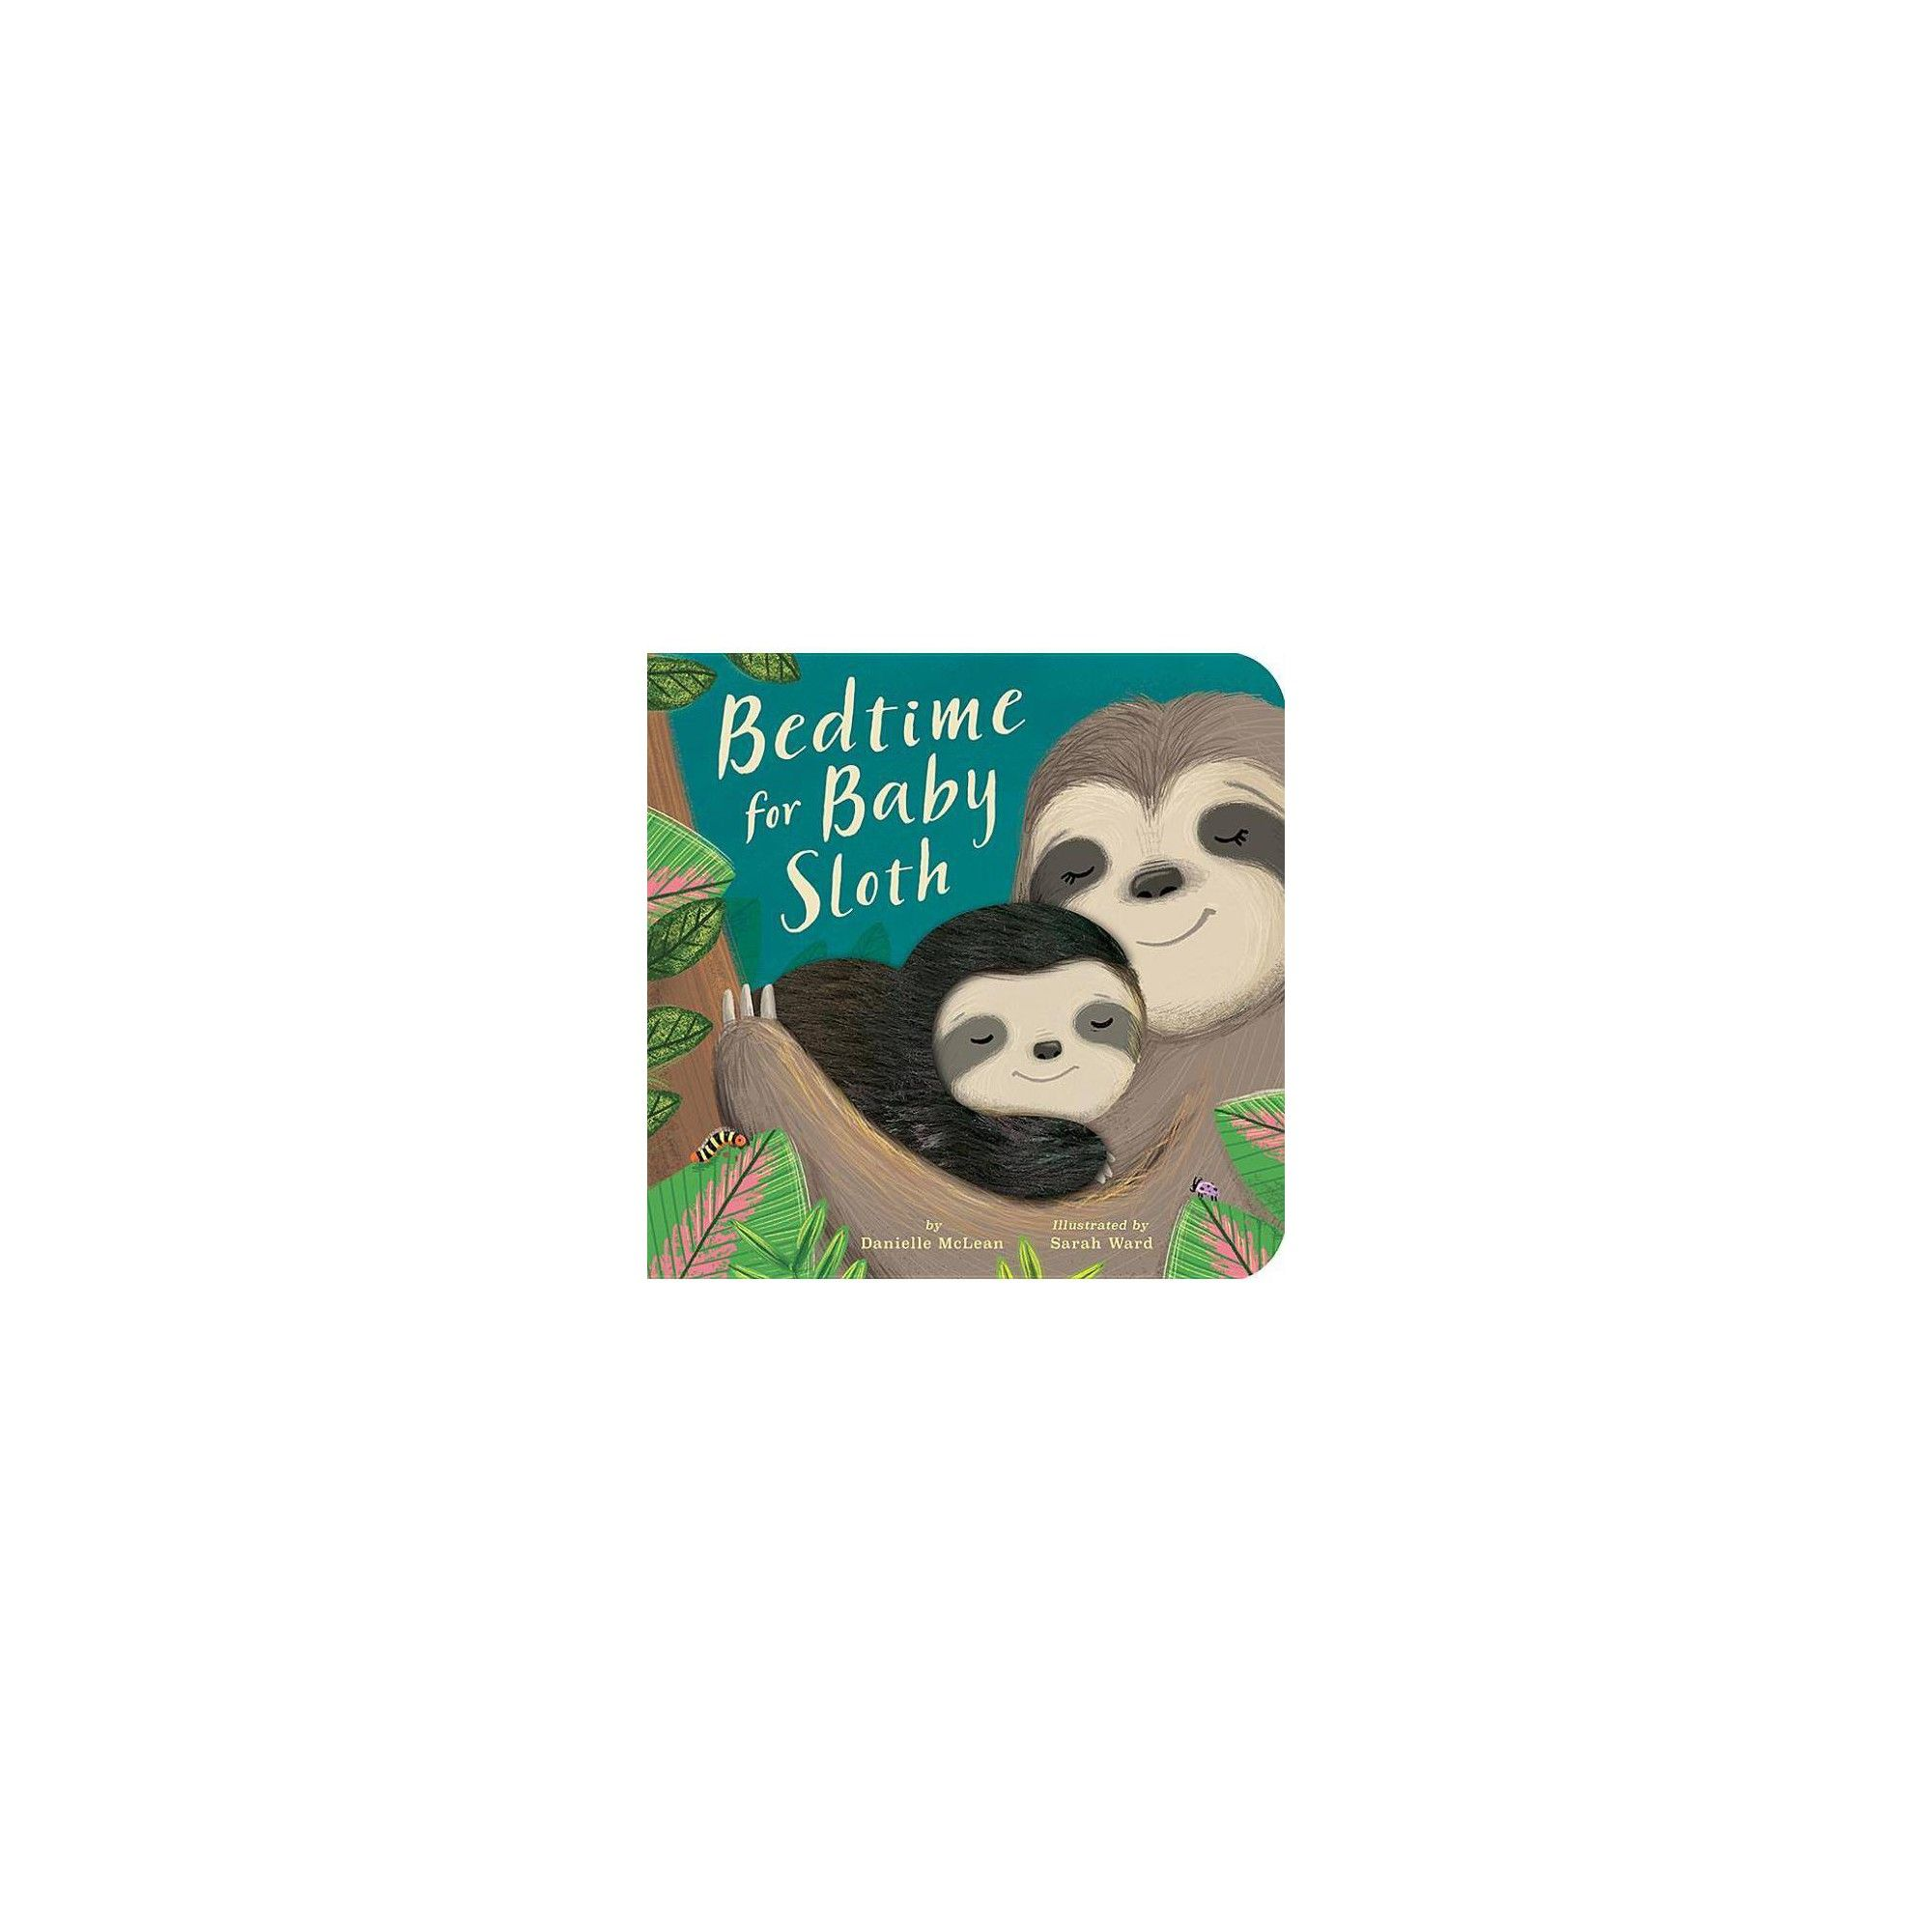 Bedtime for Baby Sloth - by Danielle McLean (Board_book) #babysloth